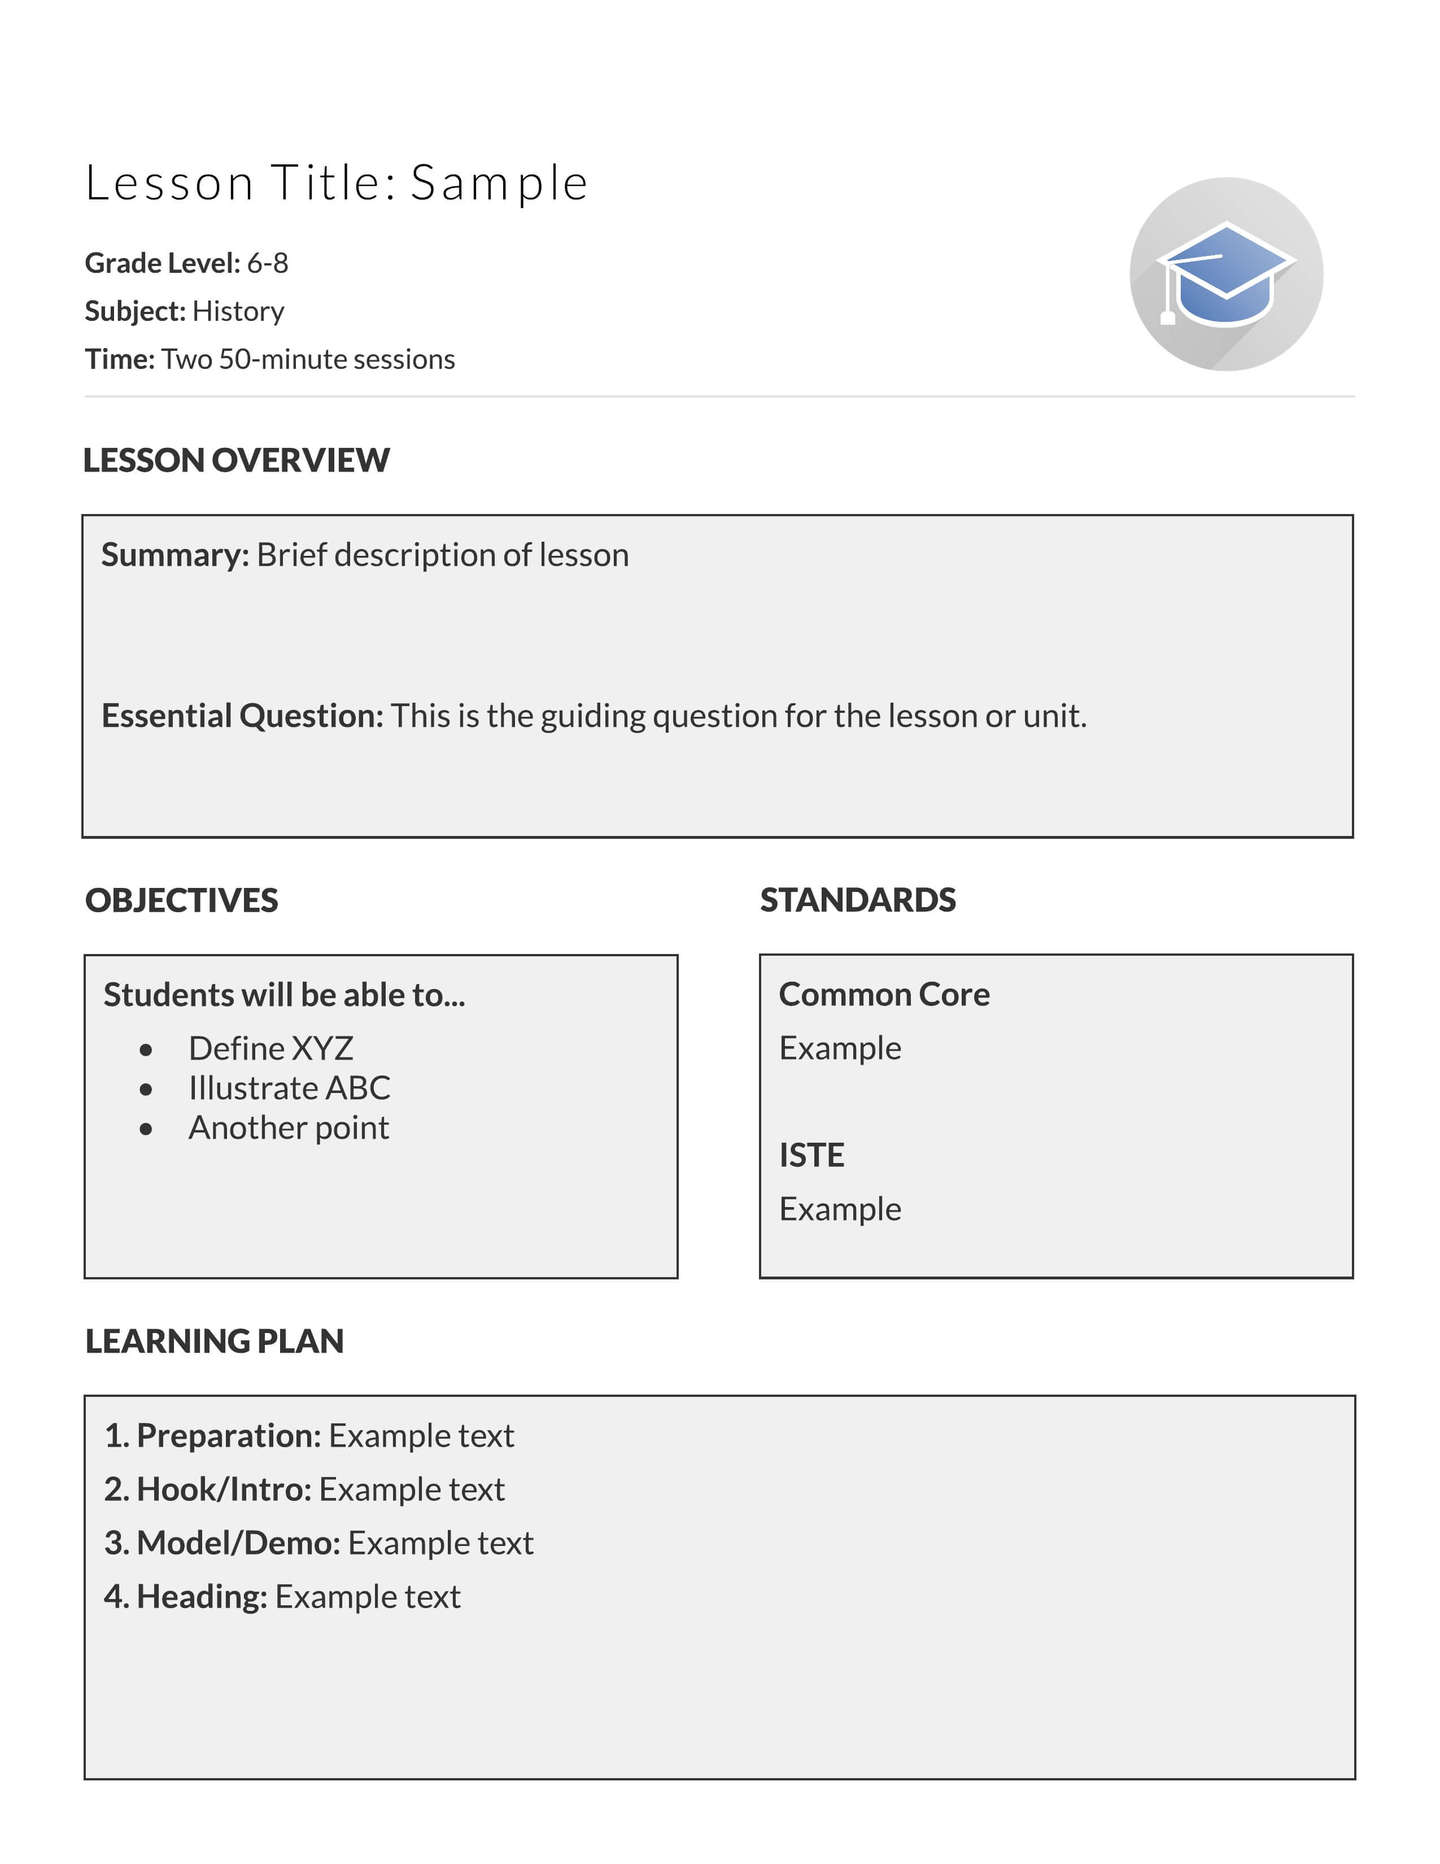 Free Lesson Plan Templates Examples Lucidpress - Free lesson plans templates